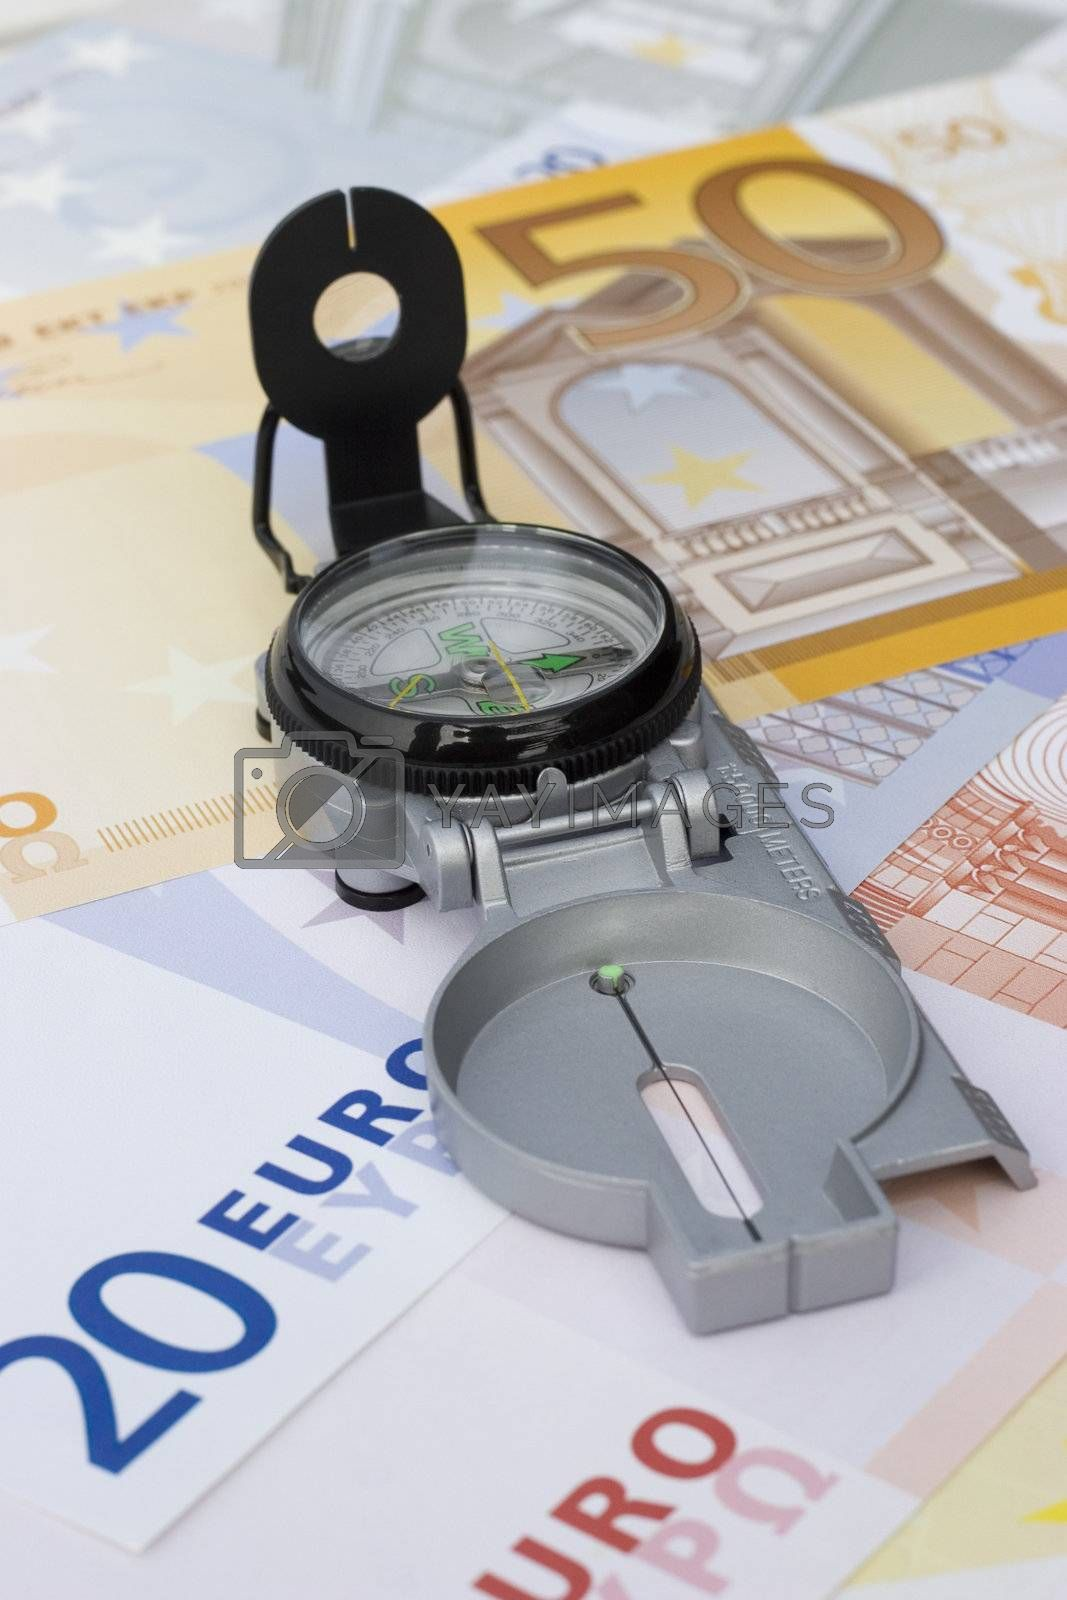 Compass on euro banknotes. Focus on the compass